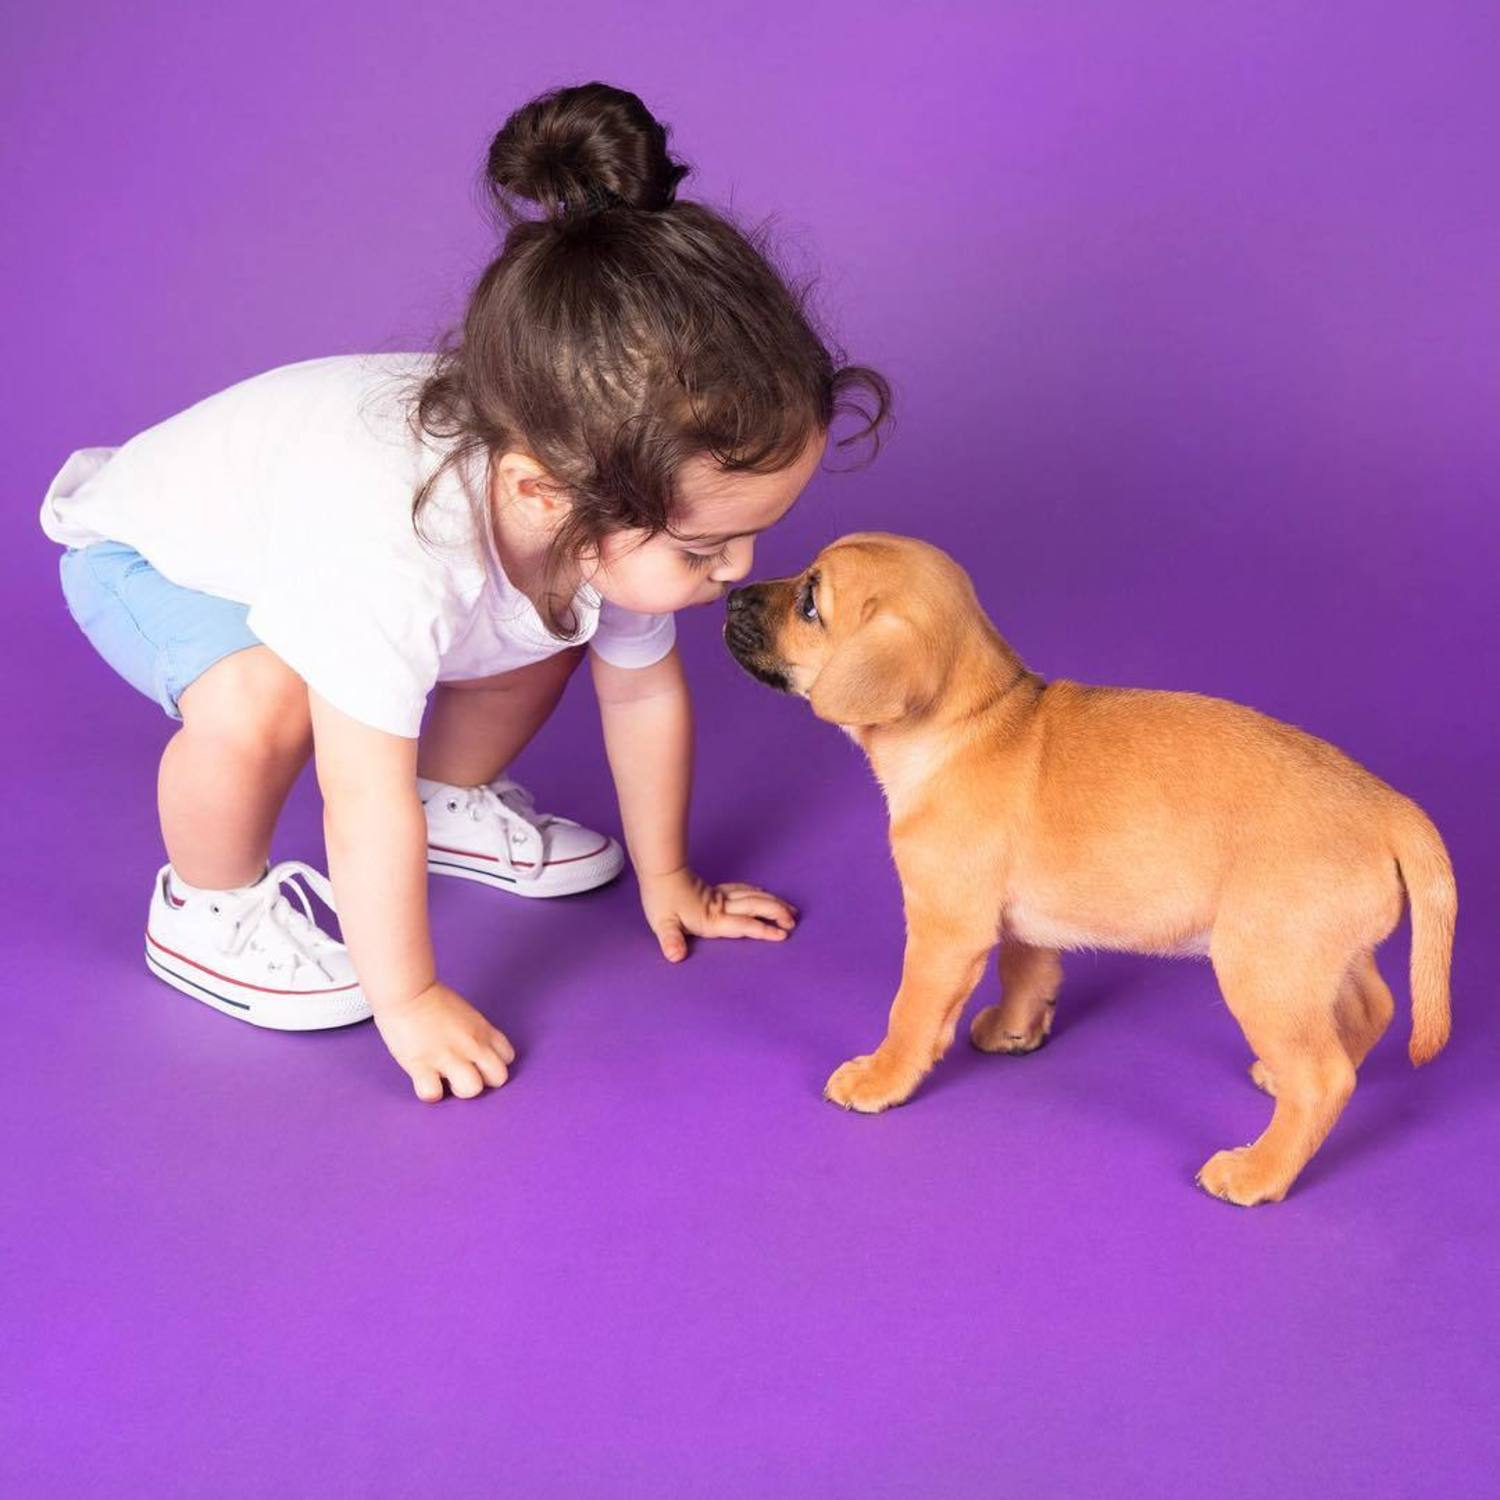 There are good kisses and bad kisses but there is no kiss like a NOSE KISS! Come hang with your bestie at @humansbf 🐾 Don't have a puppy friend? No problem! We are partnering with a dozen NYC rescue groups to feature dogs for adoption and play ❤️#humansbf